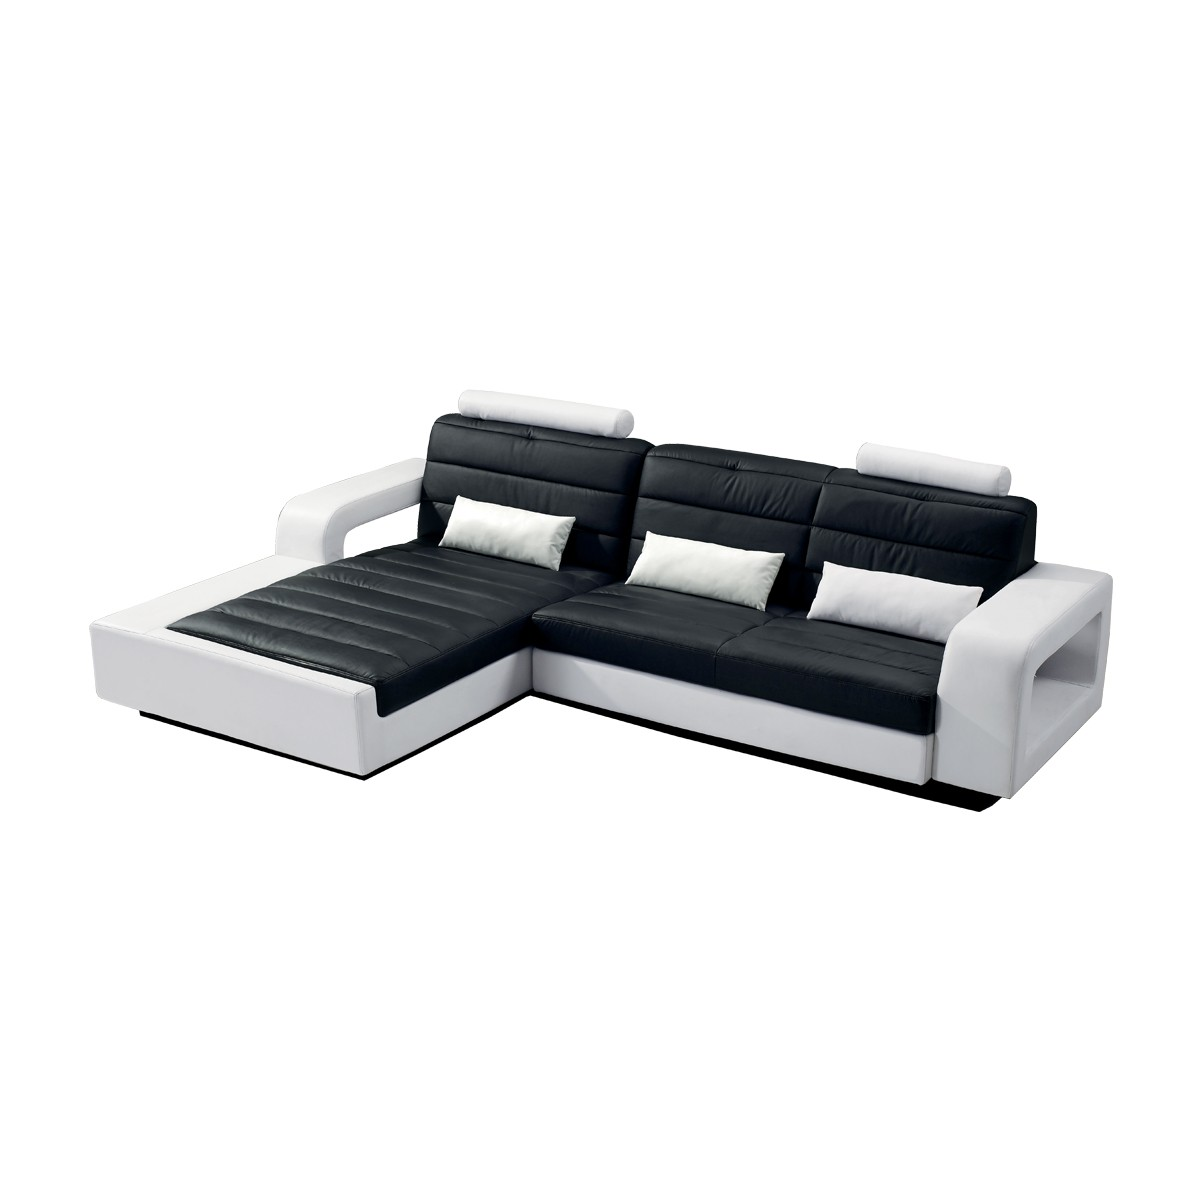 ecksofa sofa spitzecke joll nd in kunstleder schwarz wei neu ebay. Black Bedroom Furniture Sets. Home Design Ideas